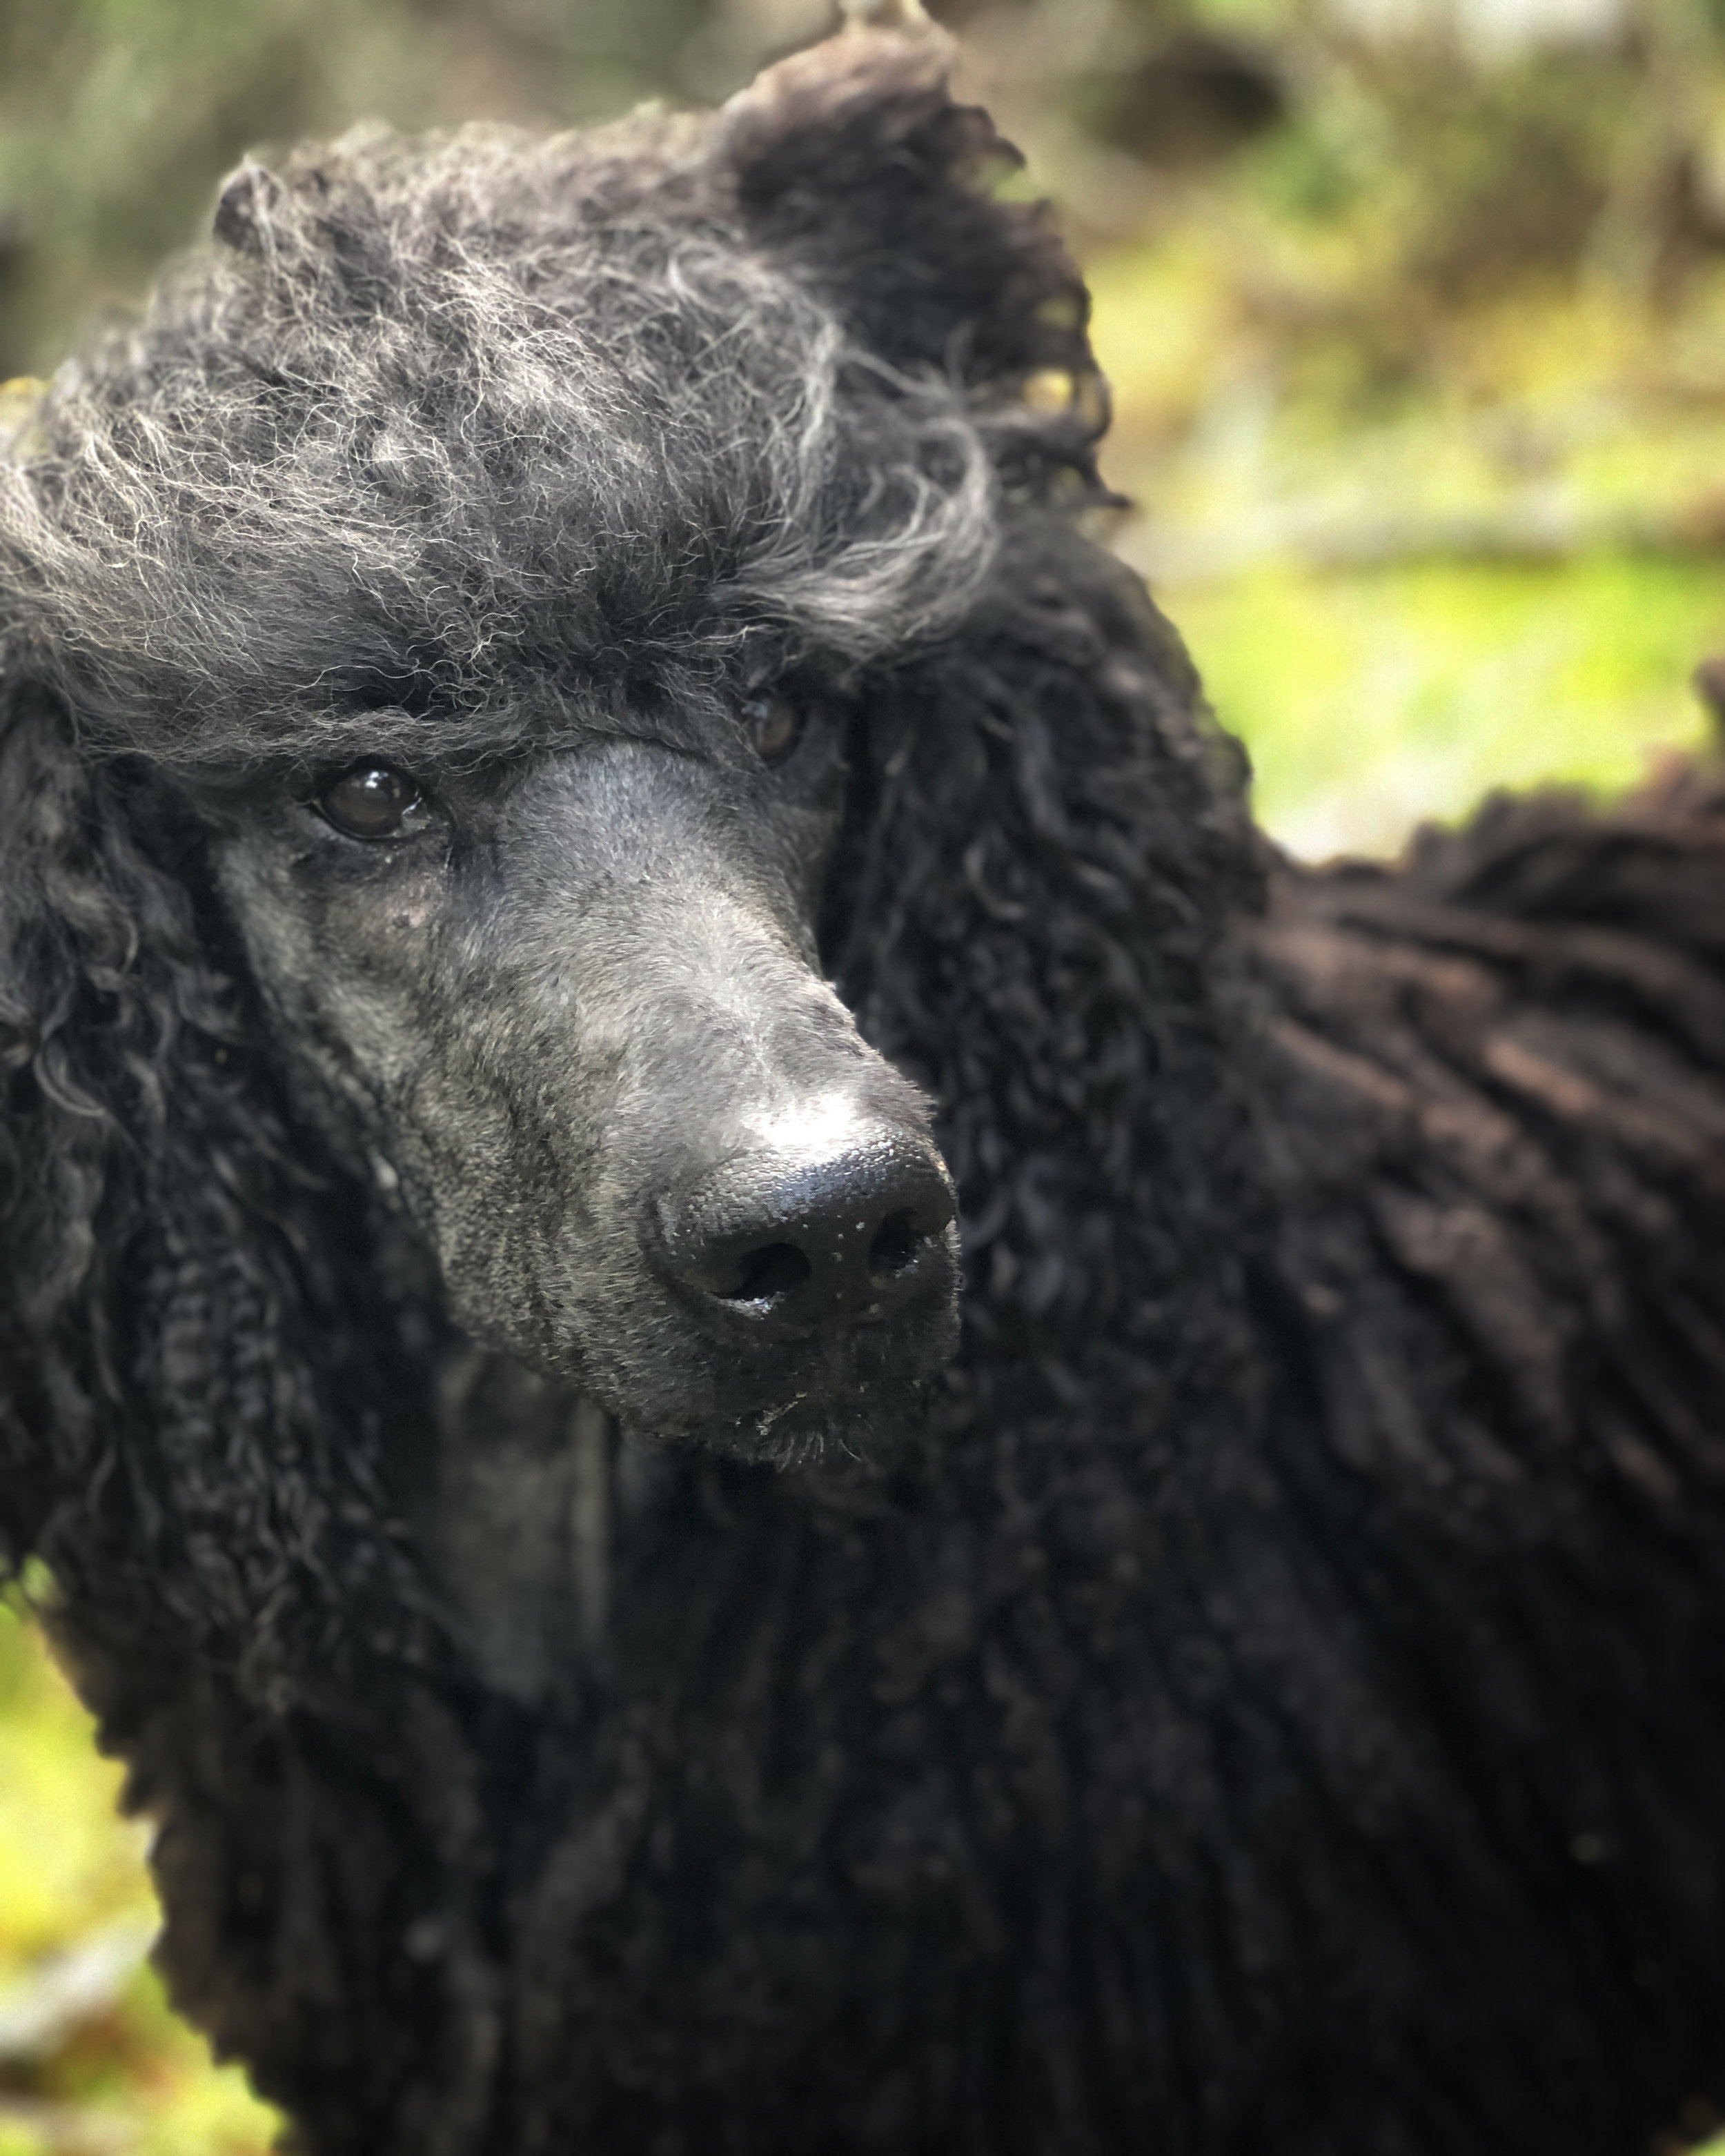 Wallace hanging out outside and showing off his standard poodle corded coat.